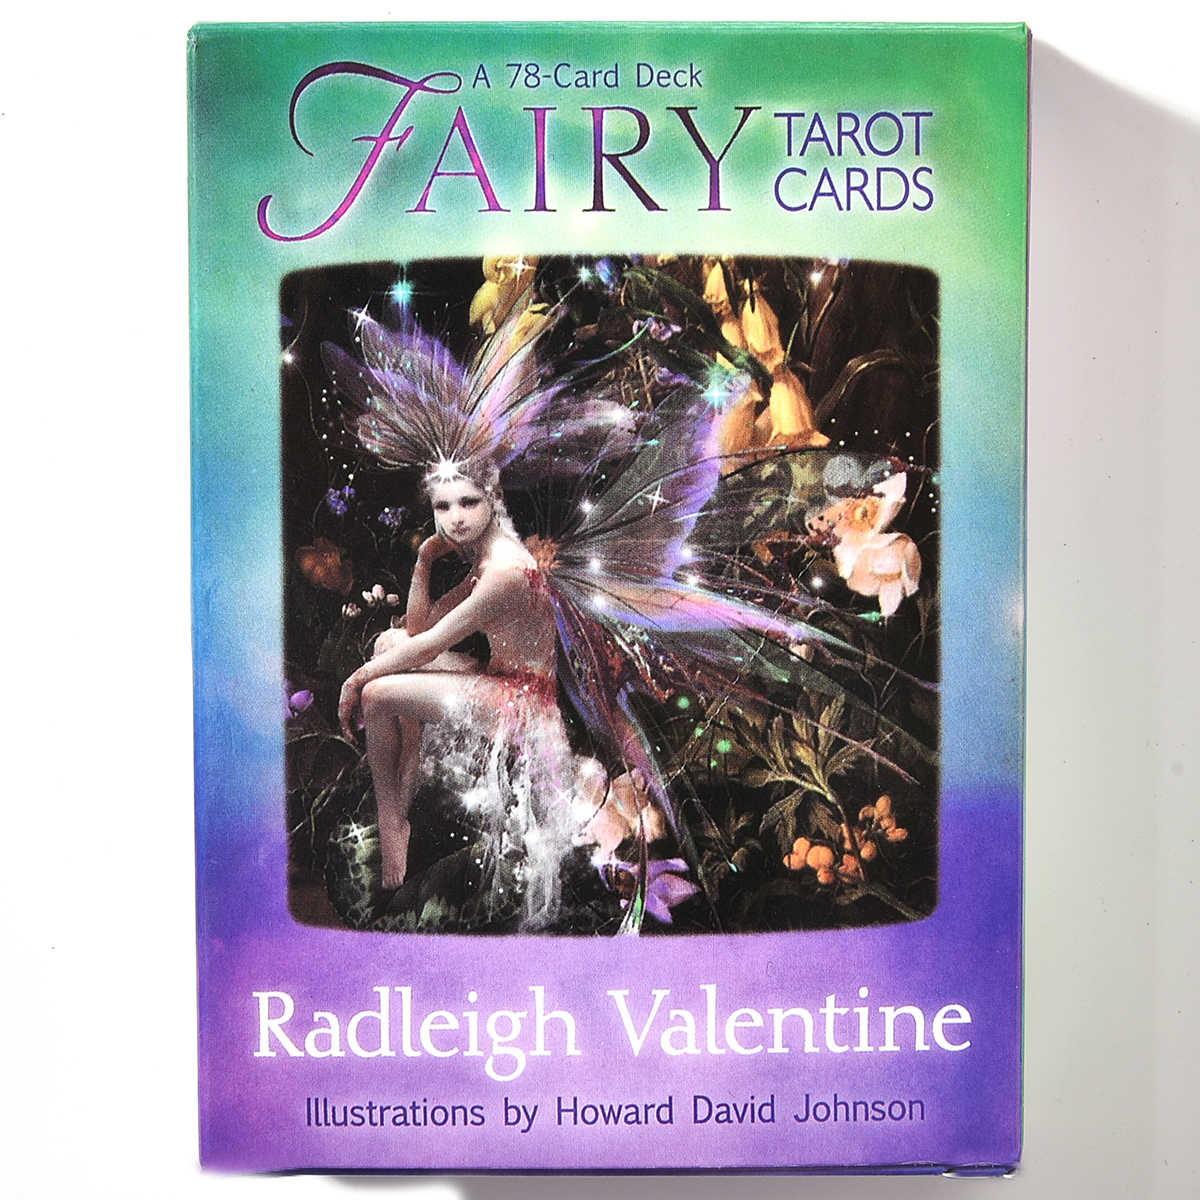 Fairy Tarot Cards A 78 Card Deck Radleigh Valentine Lllustrations High Quality Board Oracle Party Game Divination Aliexpress